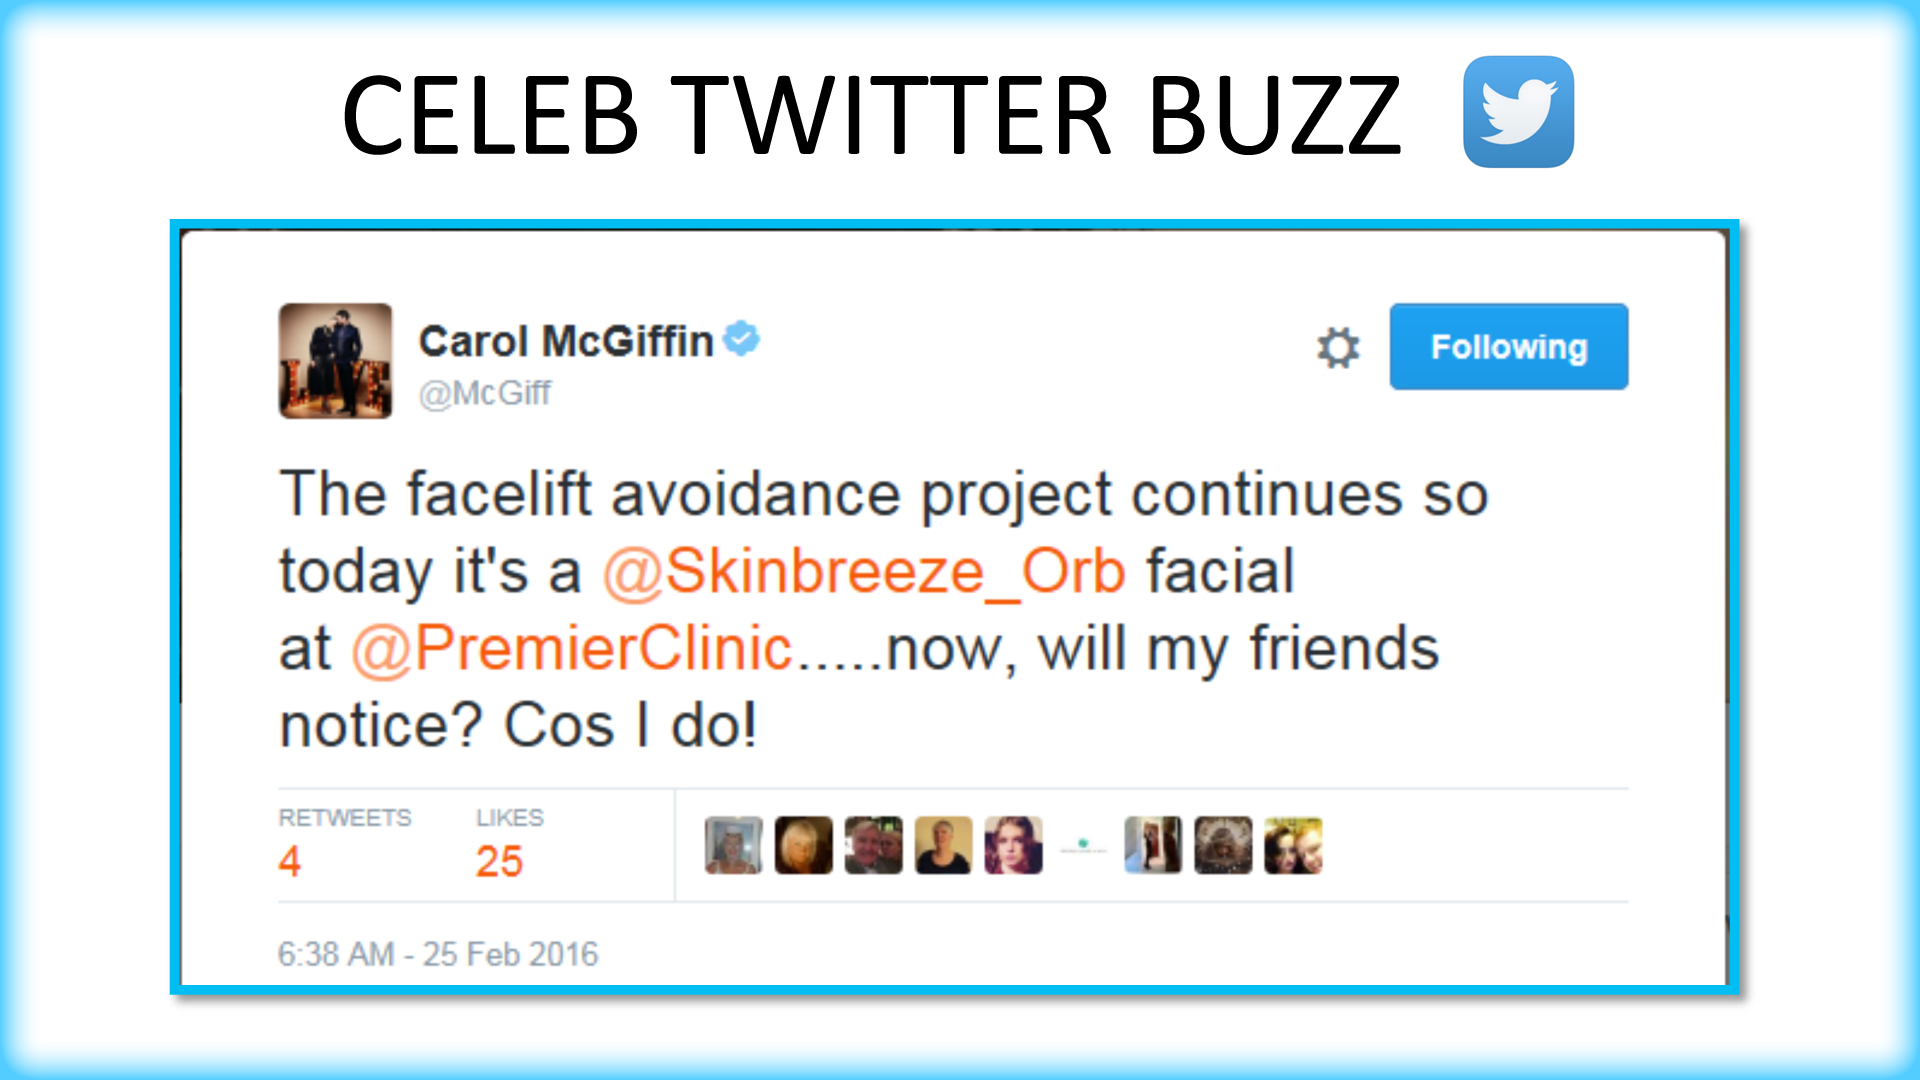 Celebrity Twitter Buzz - Carol McGiffin